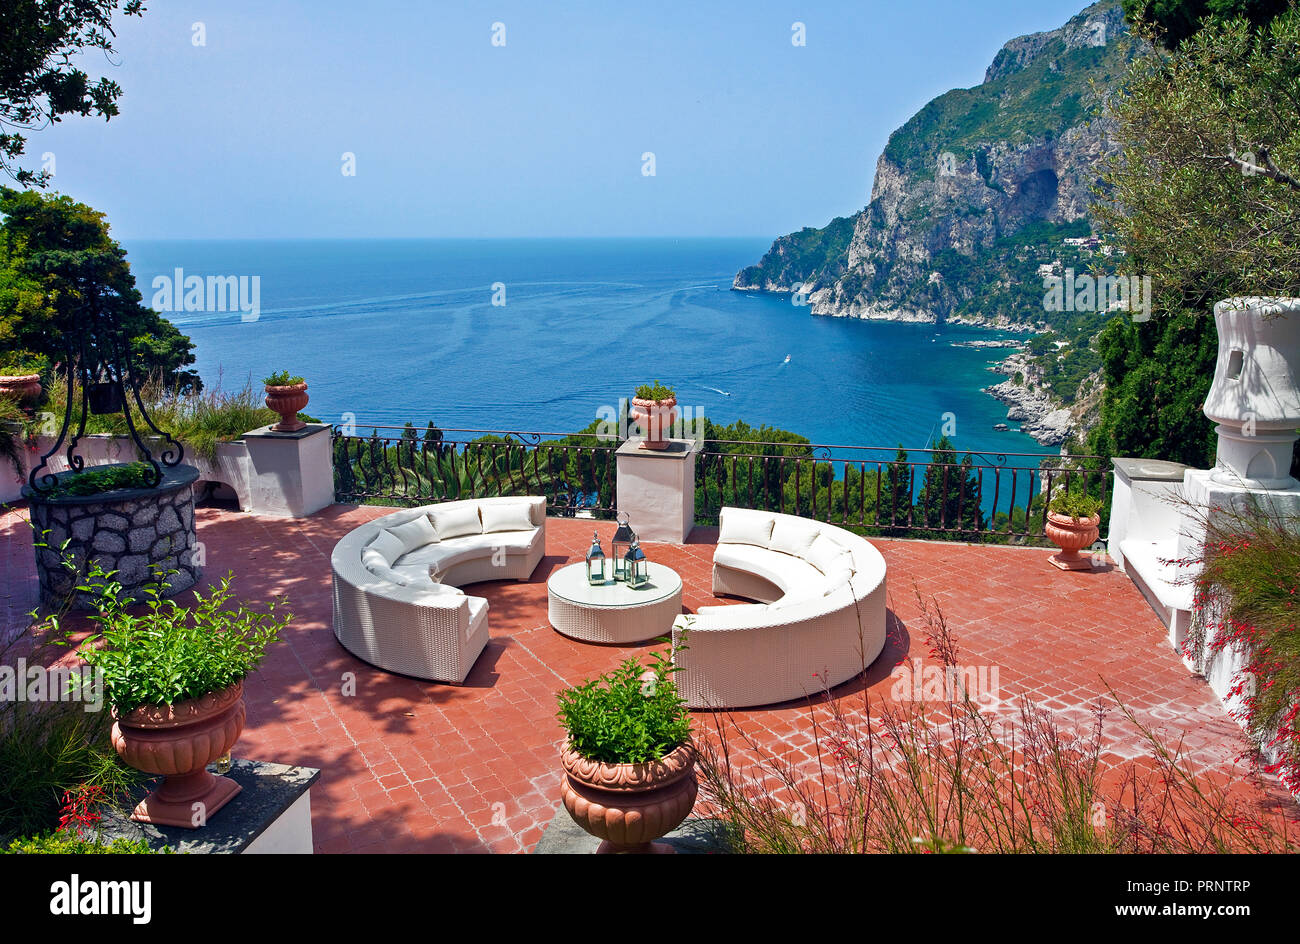 View from the terrasse of a luxury villa on the steep south coast of Capri island, Gulf of Naples, Campania, Italy - Stock Image